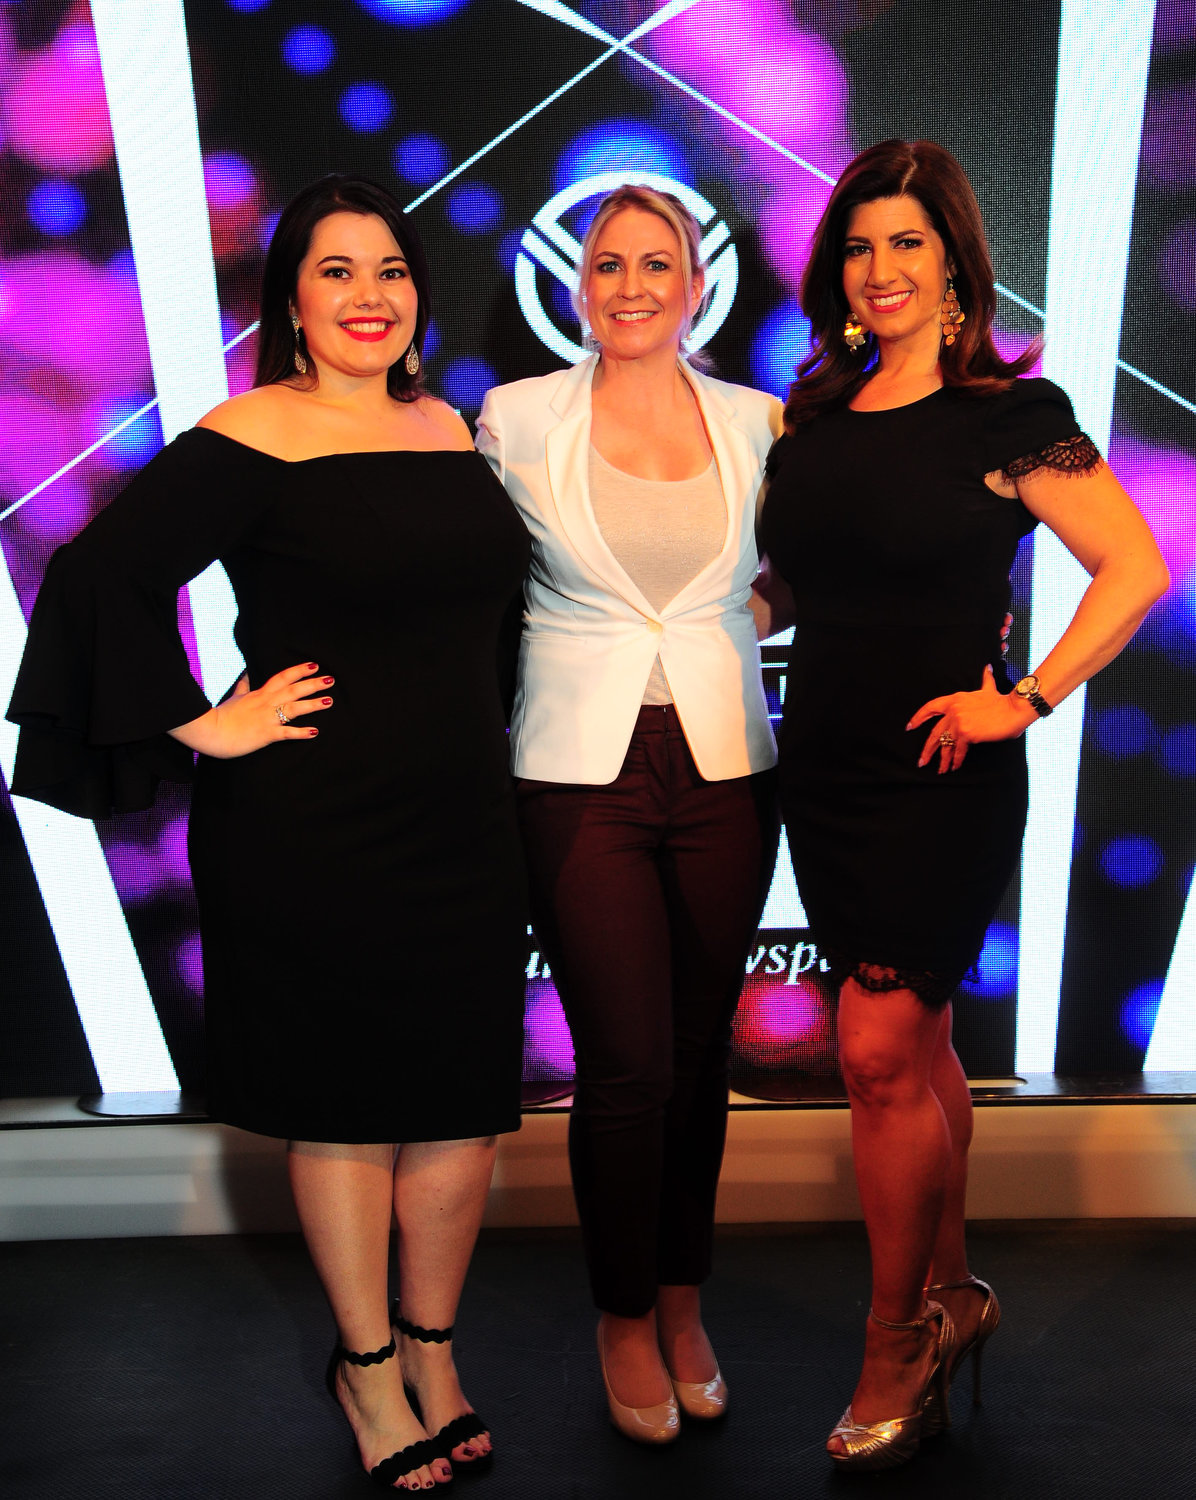 The evening's masters of ceremonies were Alyssa Seidman, of the Sea Cliff/Glen Head Herald, Kara Reifert, of K-98.3, and Antoinette Biordi, of News 12 Long Island.